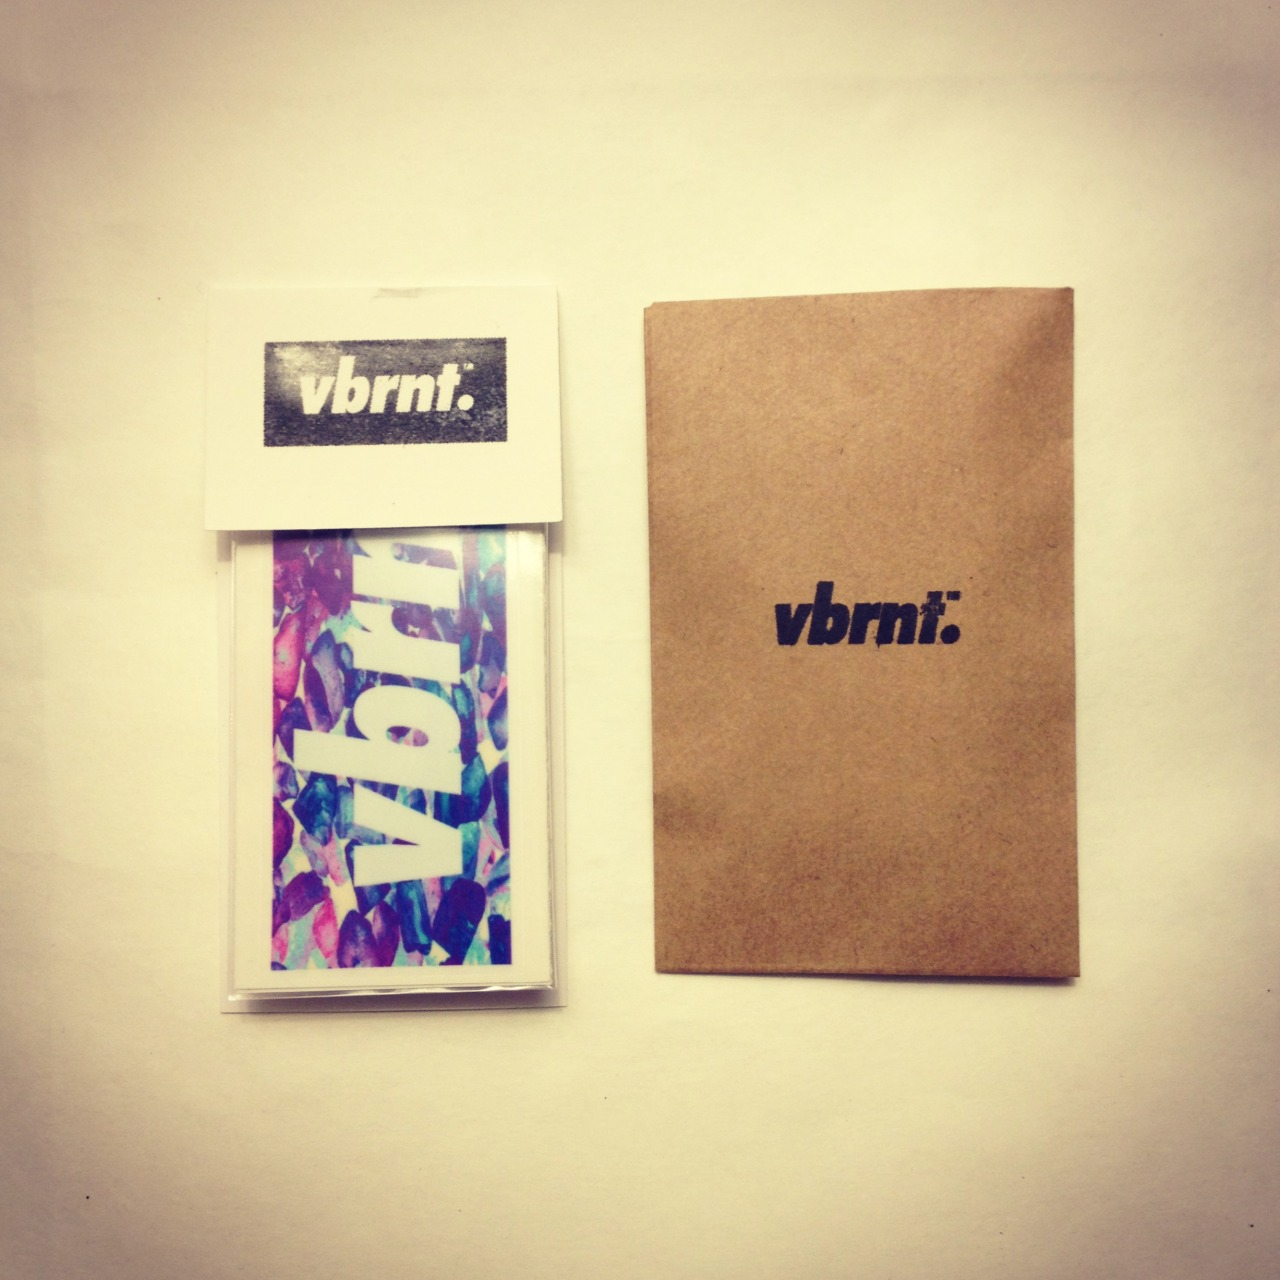 vbrnt. sticker/pin packages bein sent out, sneakmiek@yahoo.com